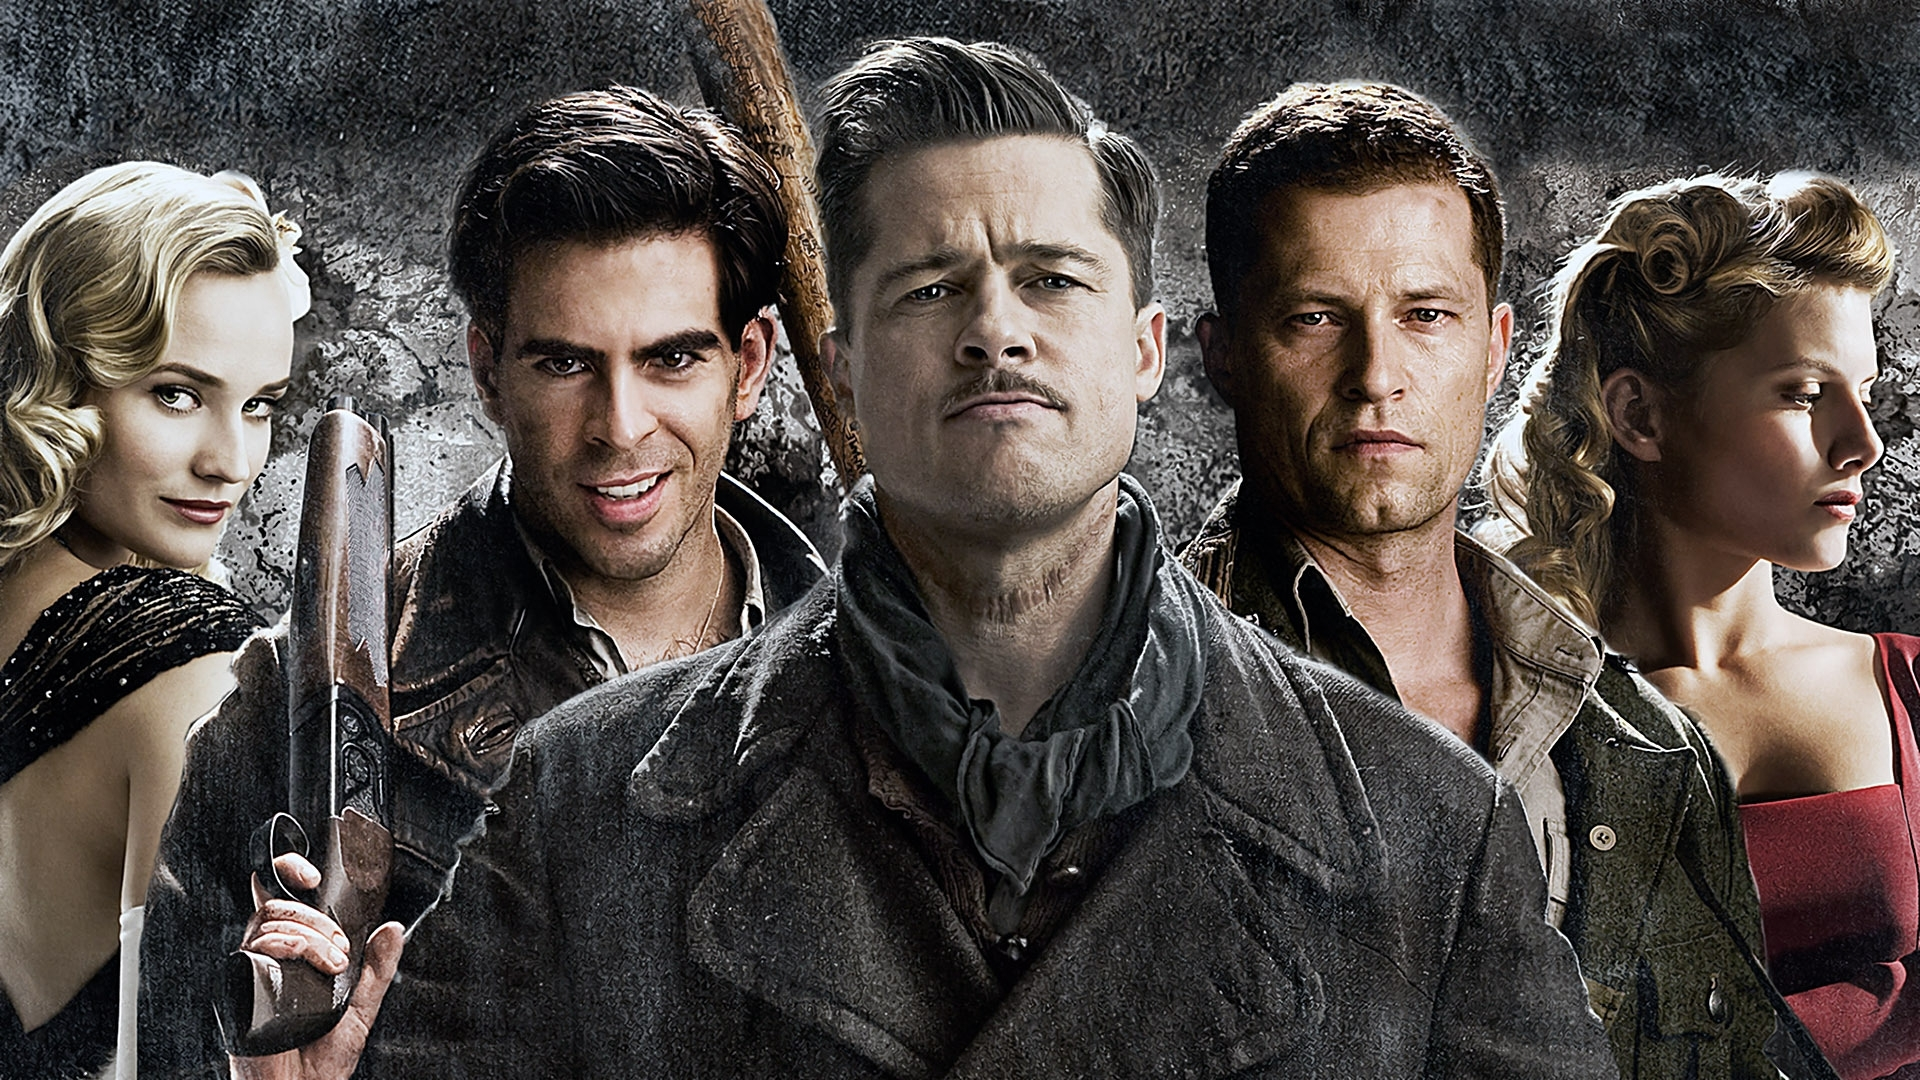 46669 download wallpaper Cinema, People, Brad Pitt screensavers and pictures for free